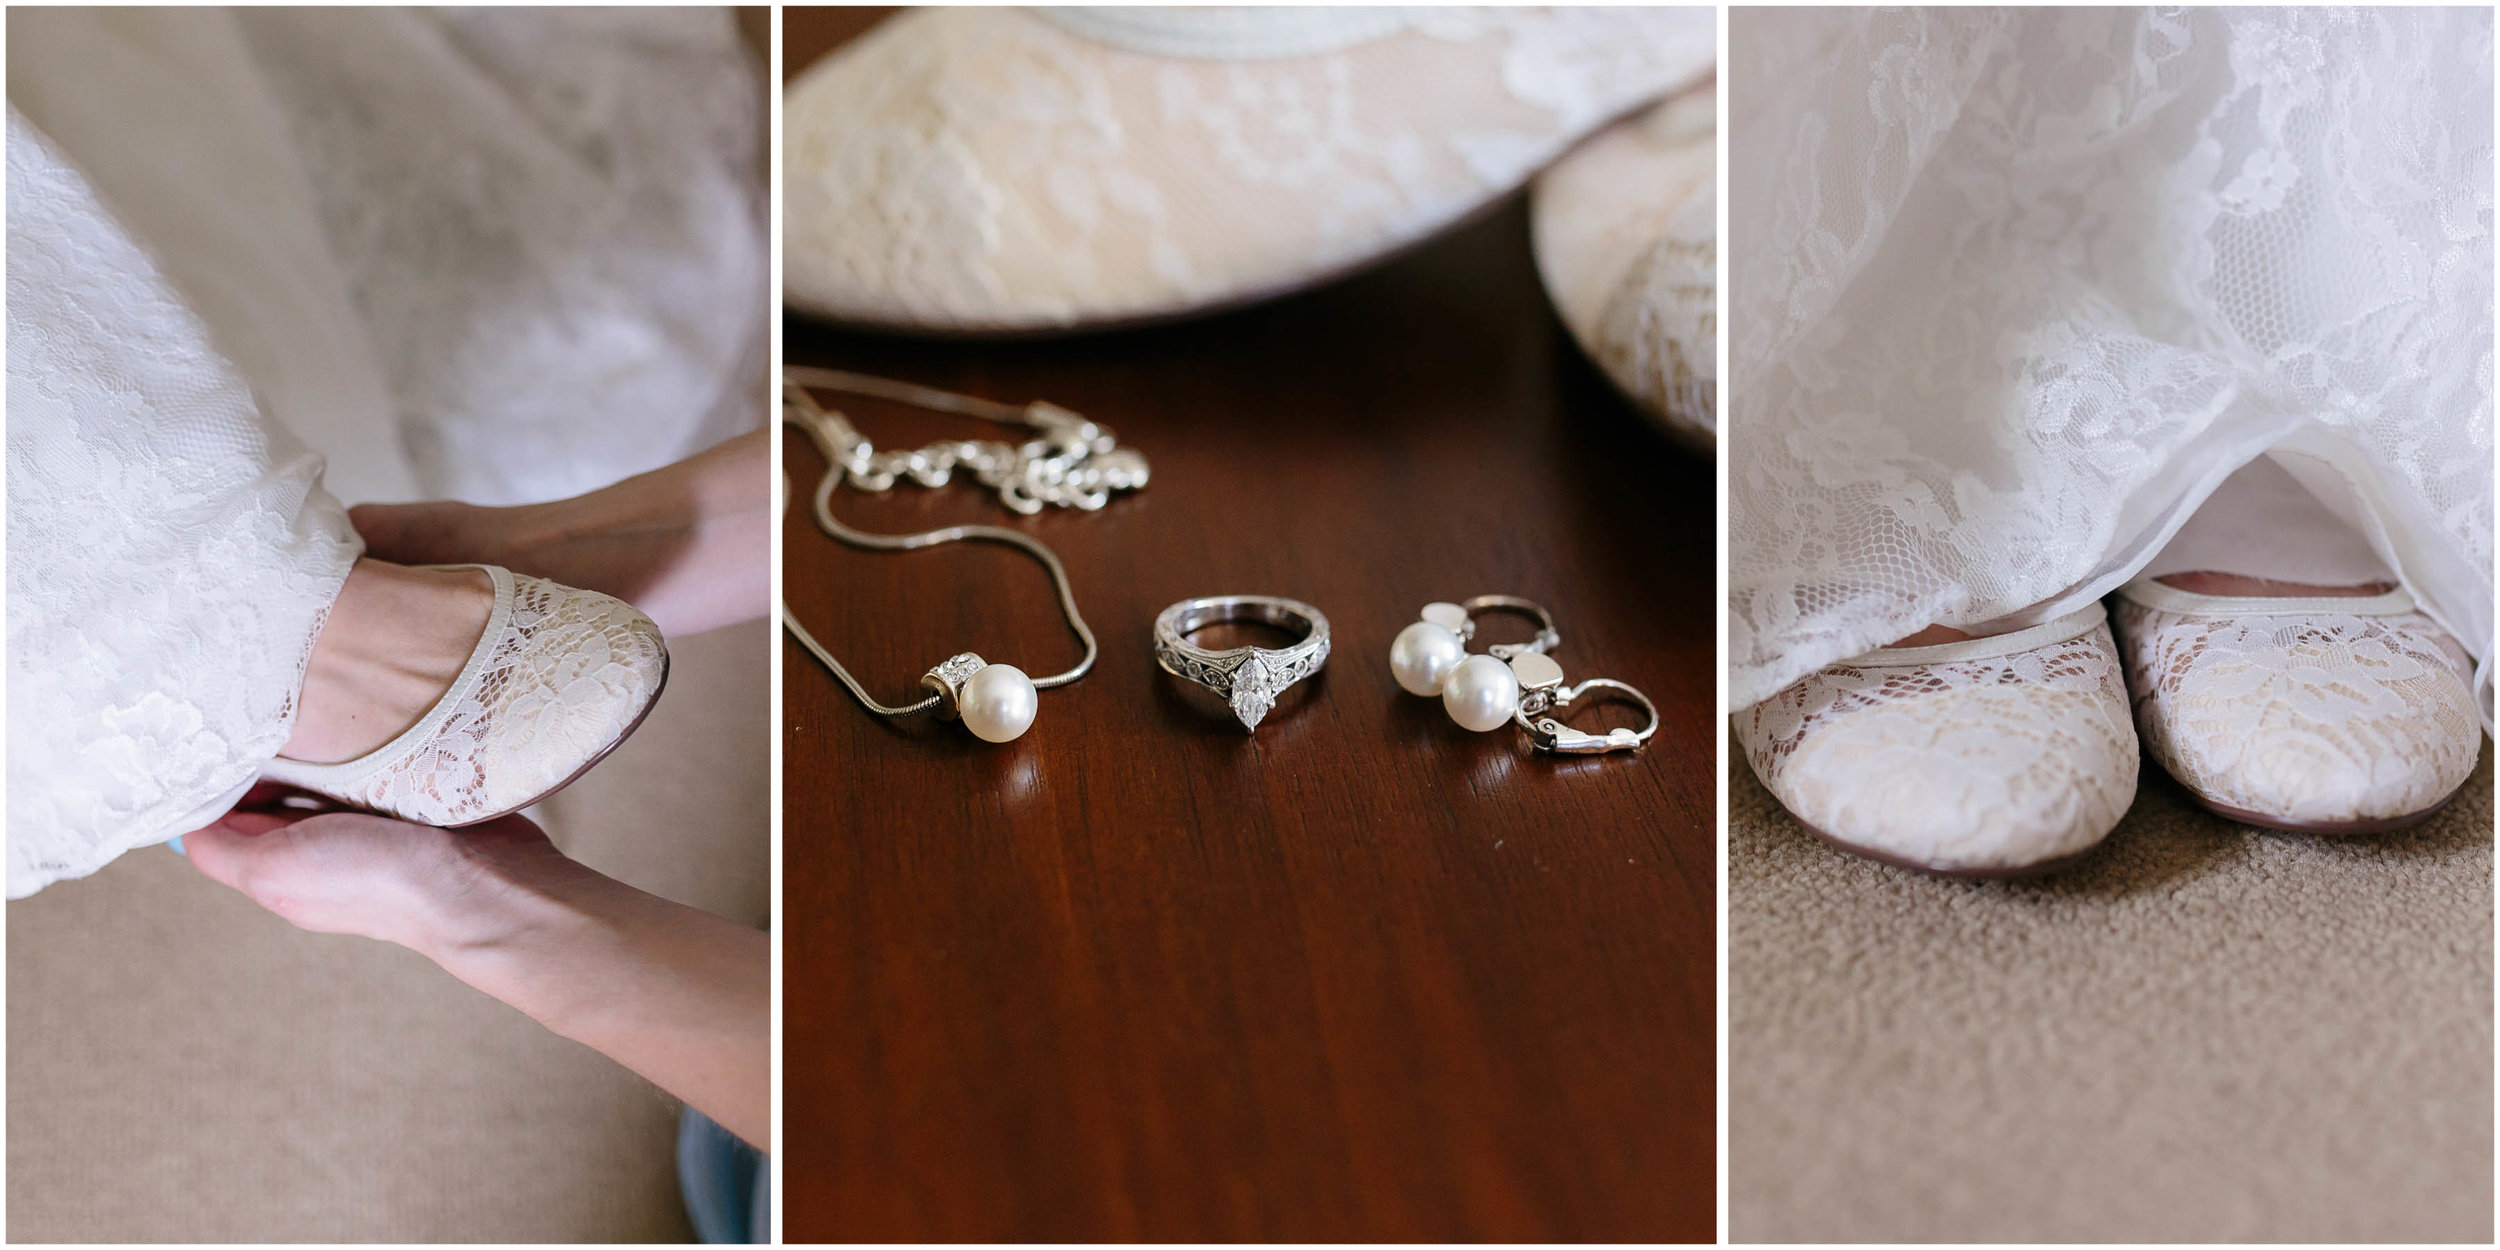 Sunny New Hampshire Summer Wedding at Mile Away Restaurant - shoes rings jewelry